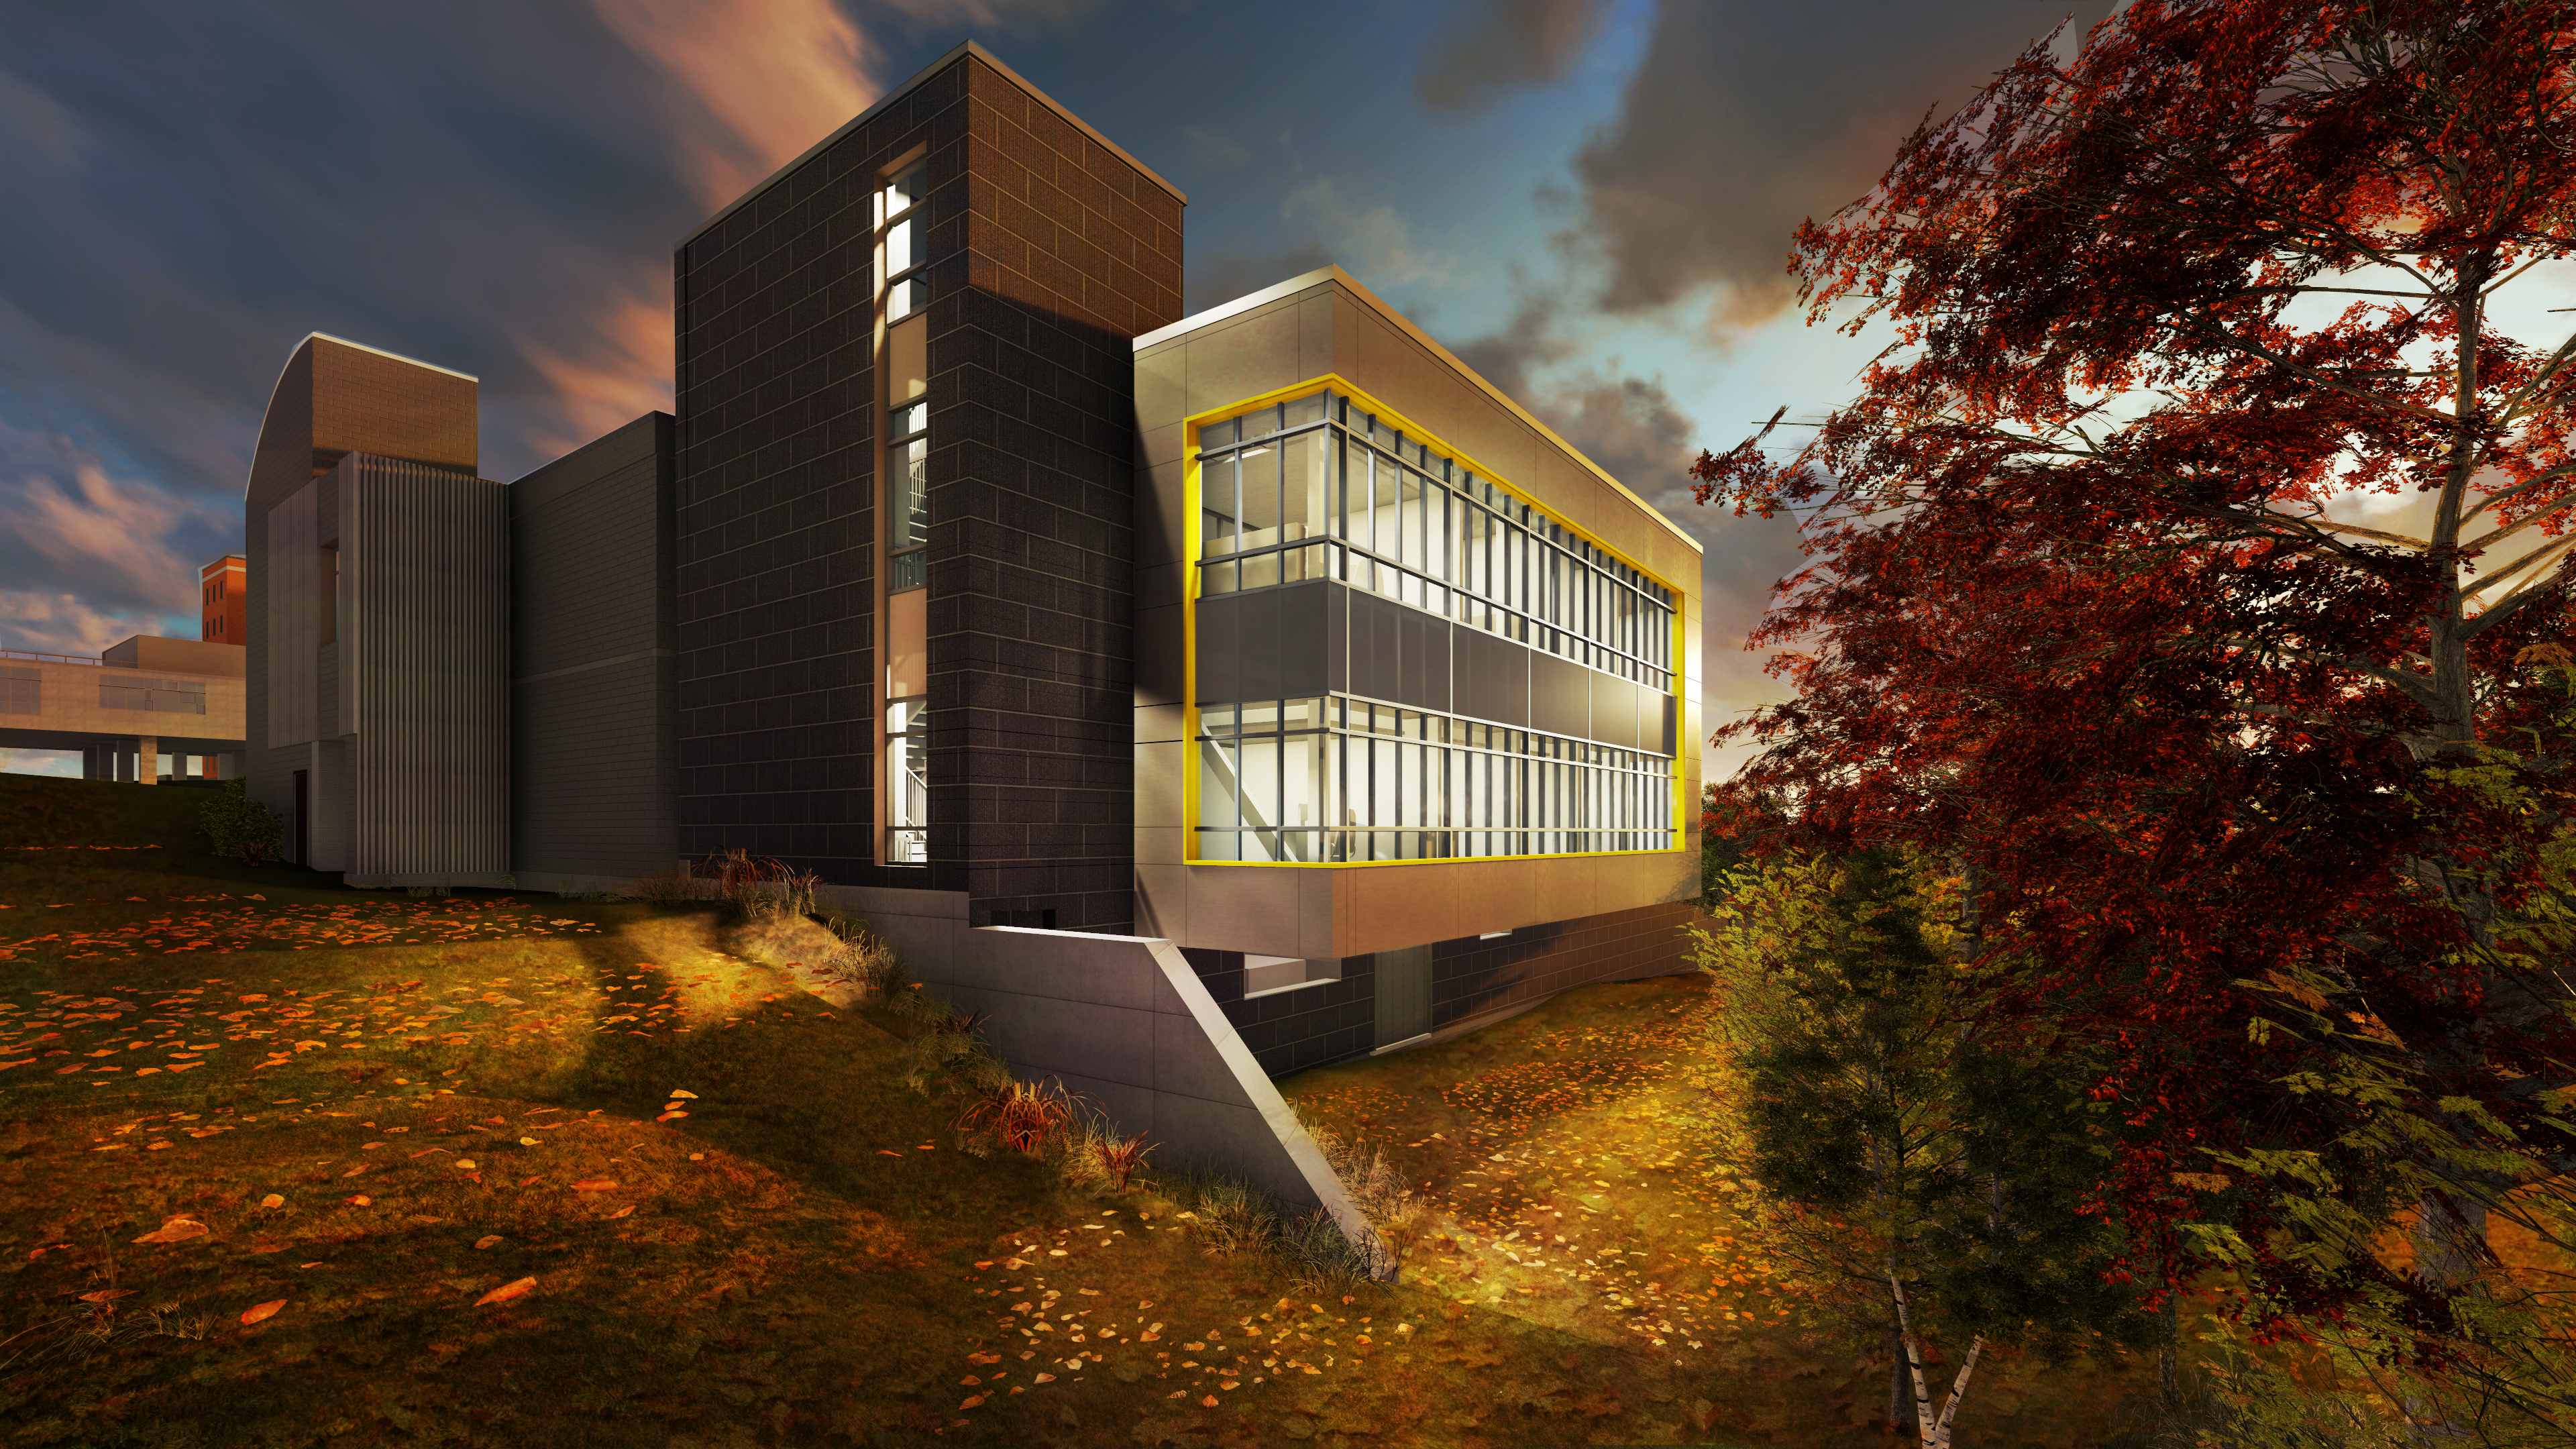 The Center for Neurorestoration and Neurotechnology Research exterior in fall with brick accents and touches of yellow